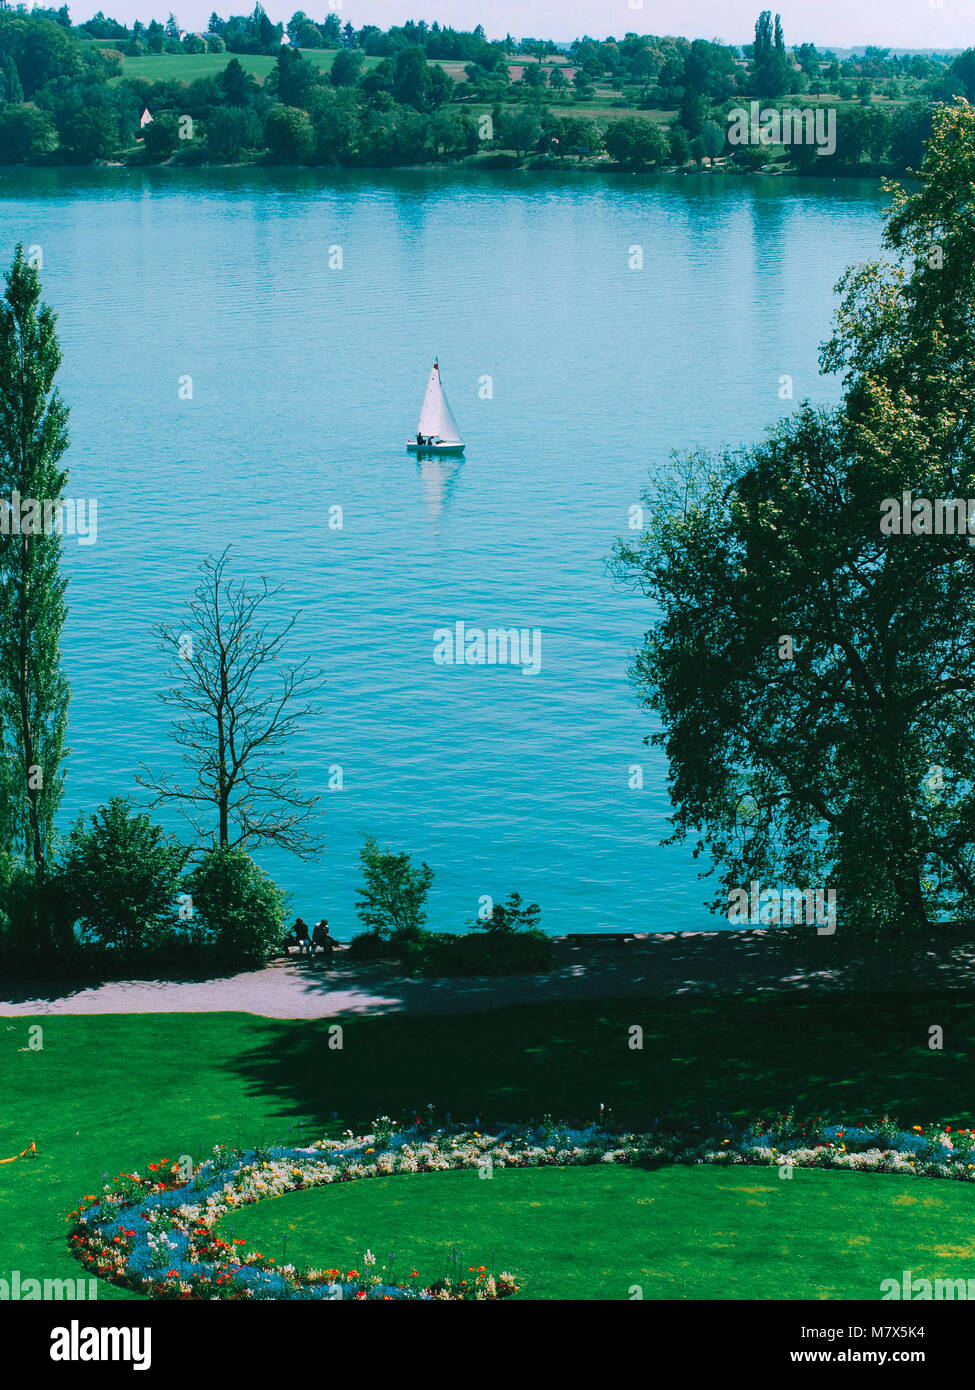 Mainau island sailboat at lake Bodensee, Germany. Stock Photo